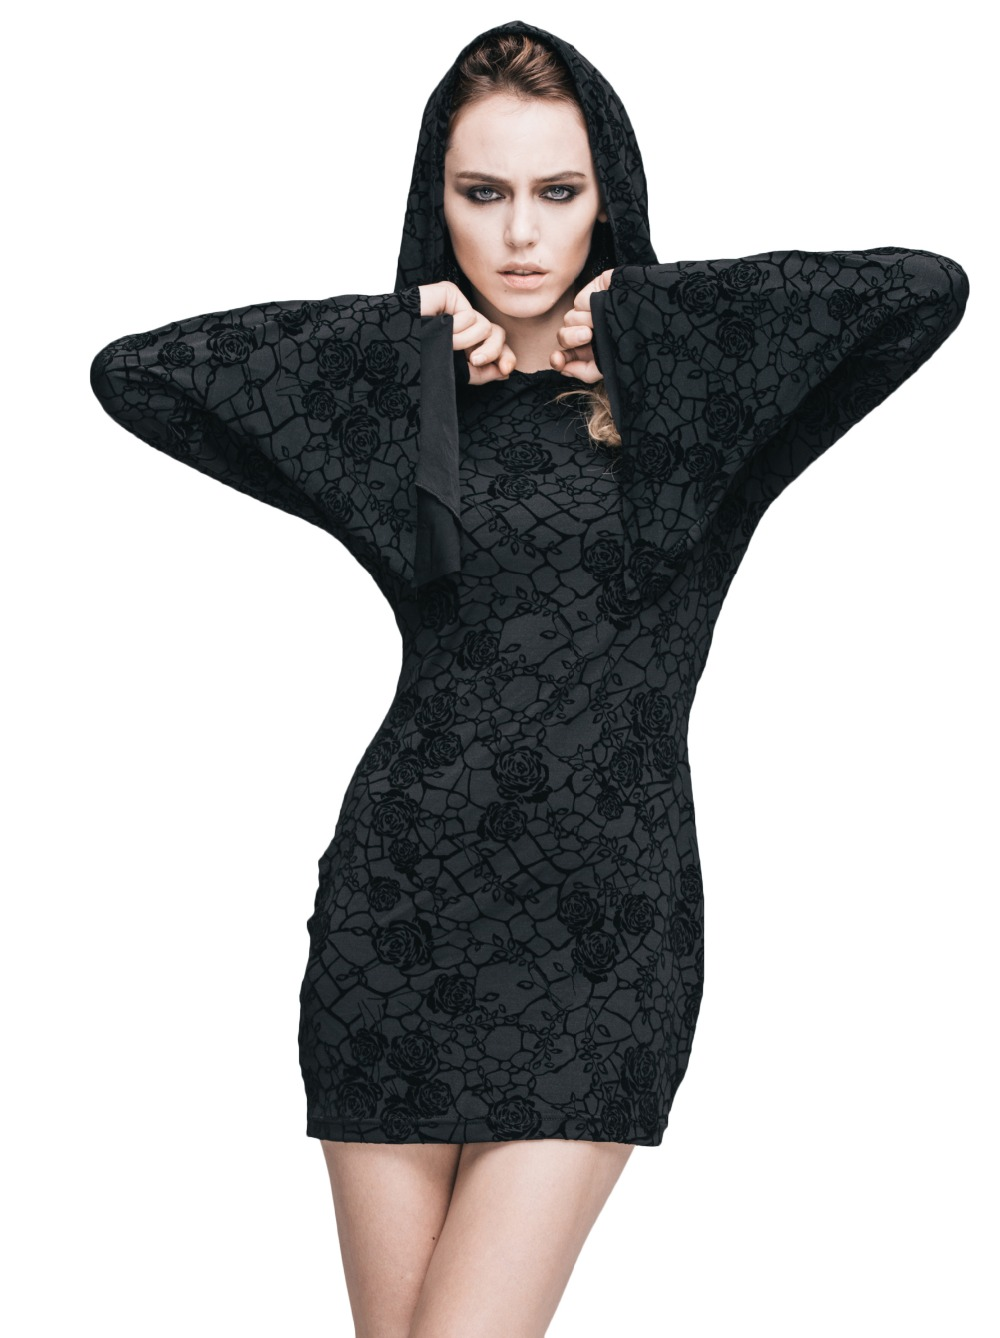 Steampunk Gothic Ukraine Black Dresses For Women Roses Print Flocking Knitted Dress With Hooded Long Sleeve Women Clothing 4